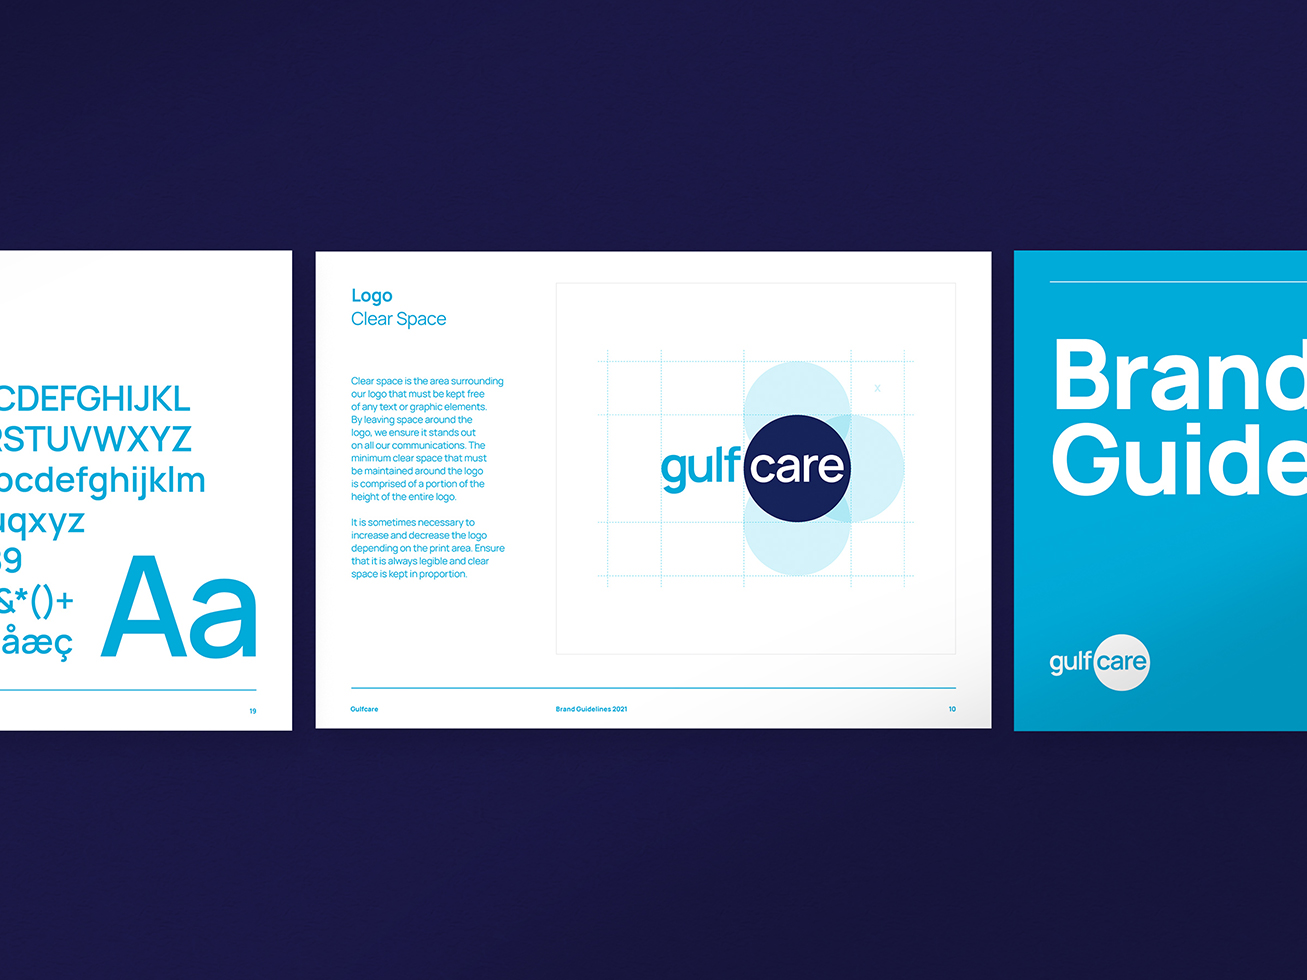 GULFCARE_IMAGES_JWI_BEYOND_BUSINESS-CARD